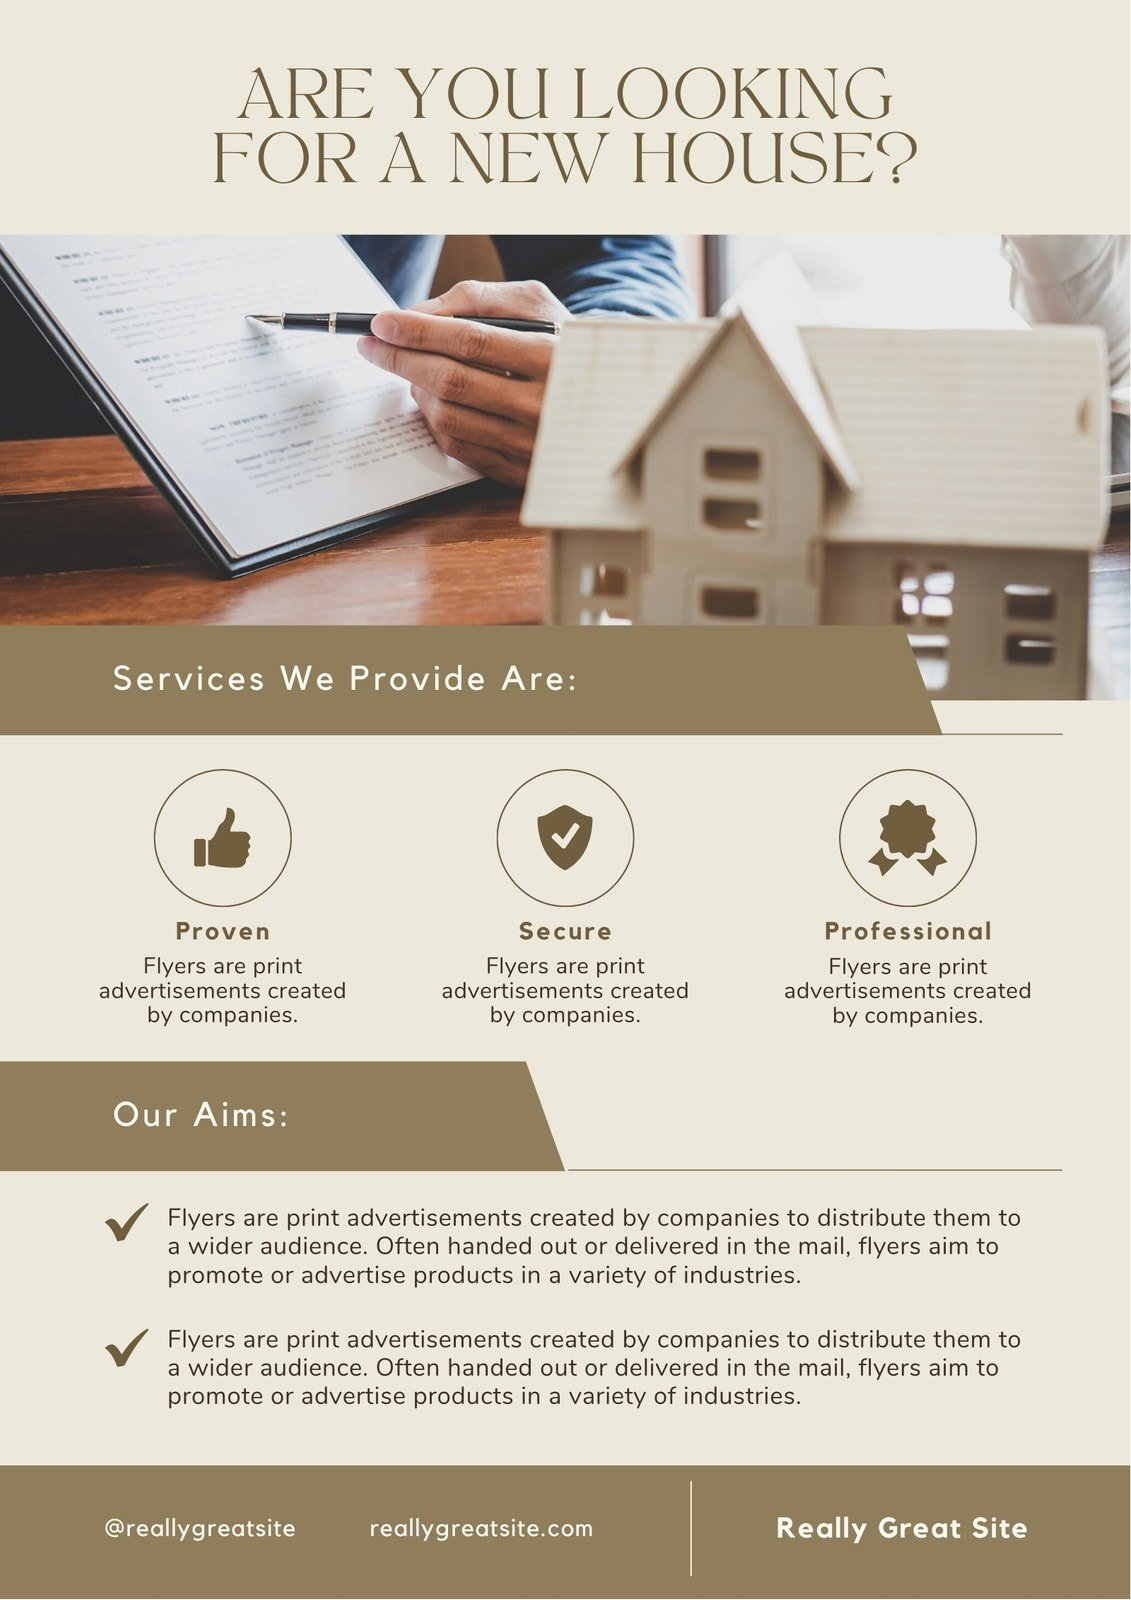 Brown Minimalist Looking For A New House To Buy Real Estate Flyer